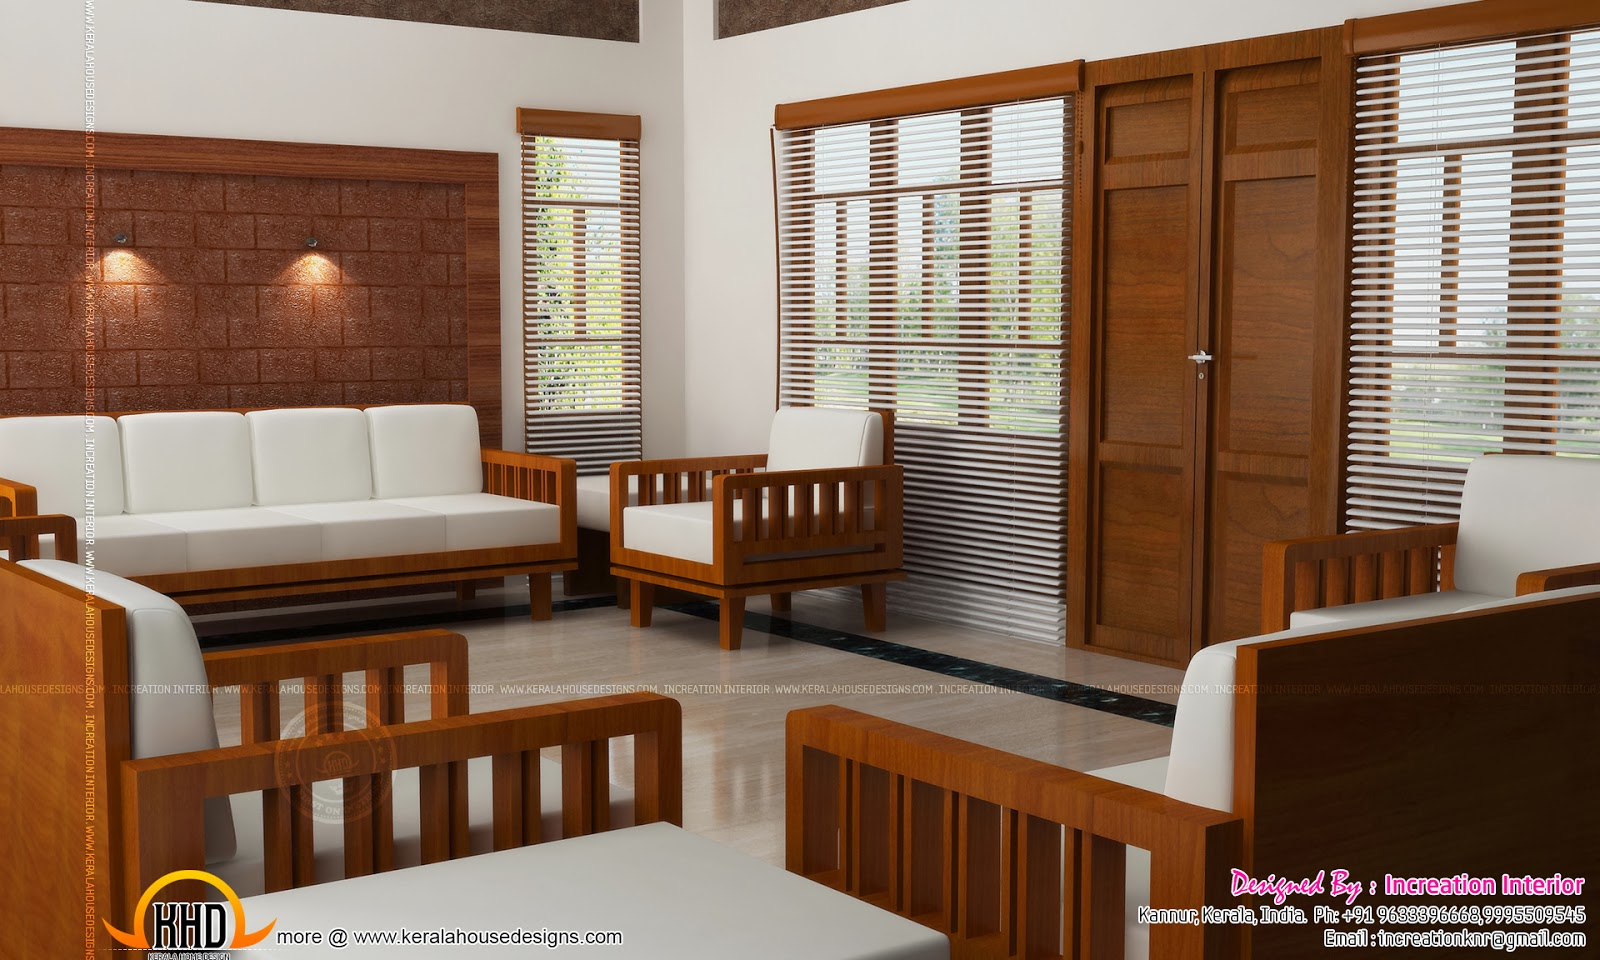 beautiful home interiors home kerala plans. Black Bedroom Furniture Sets. Home Design Ideas